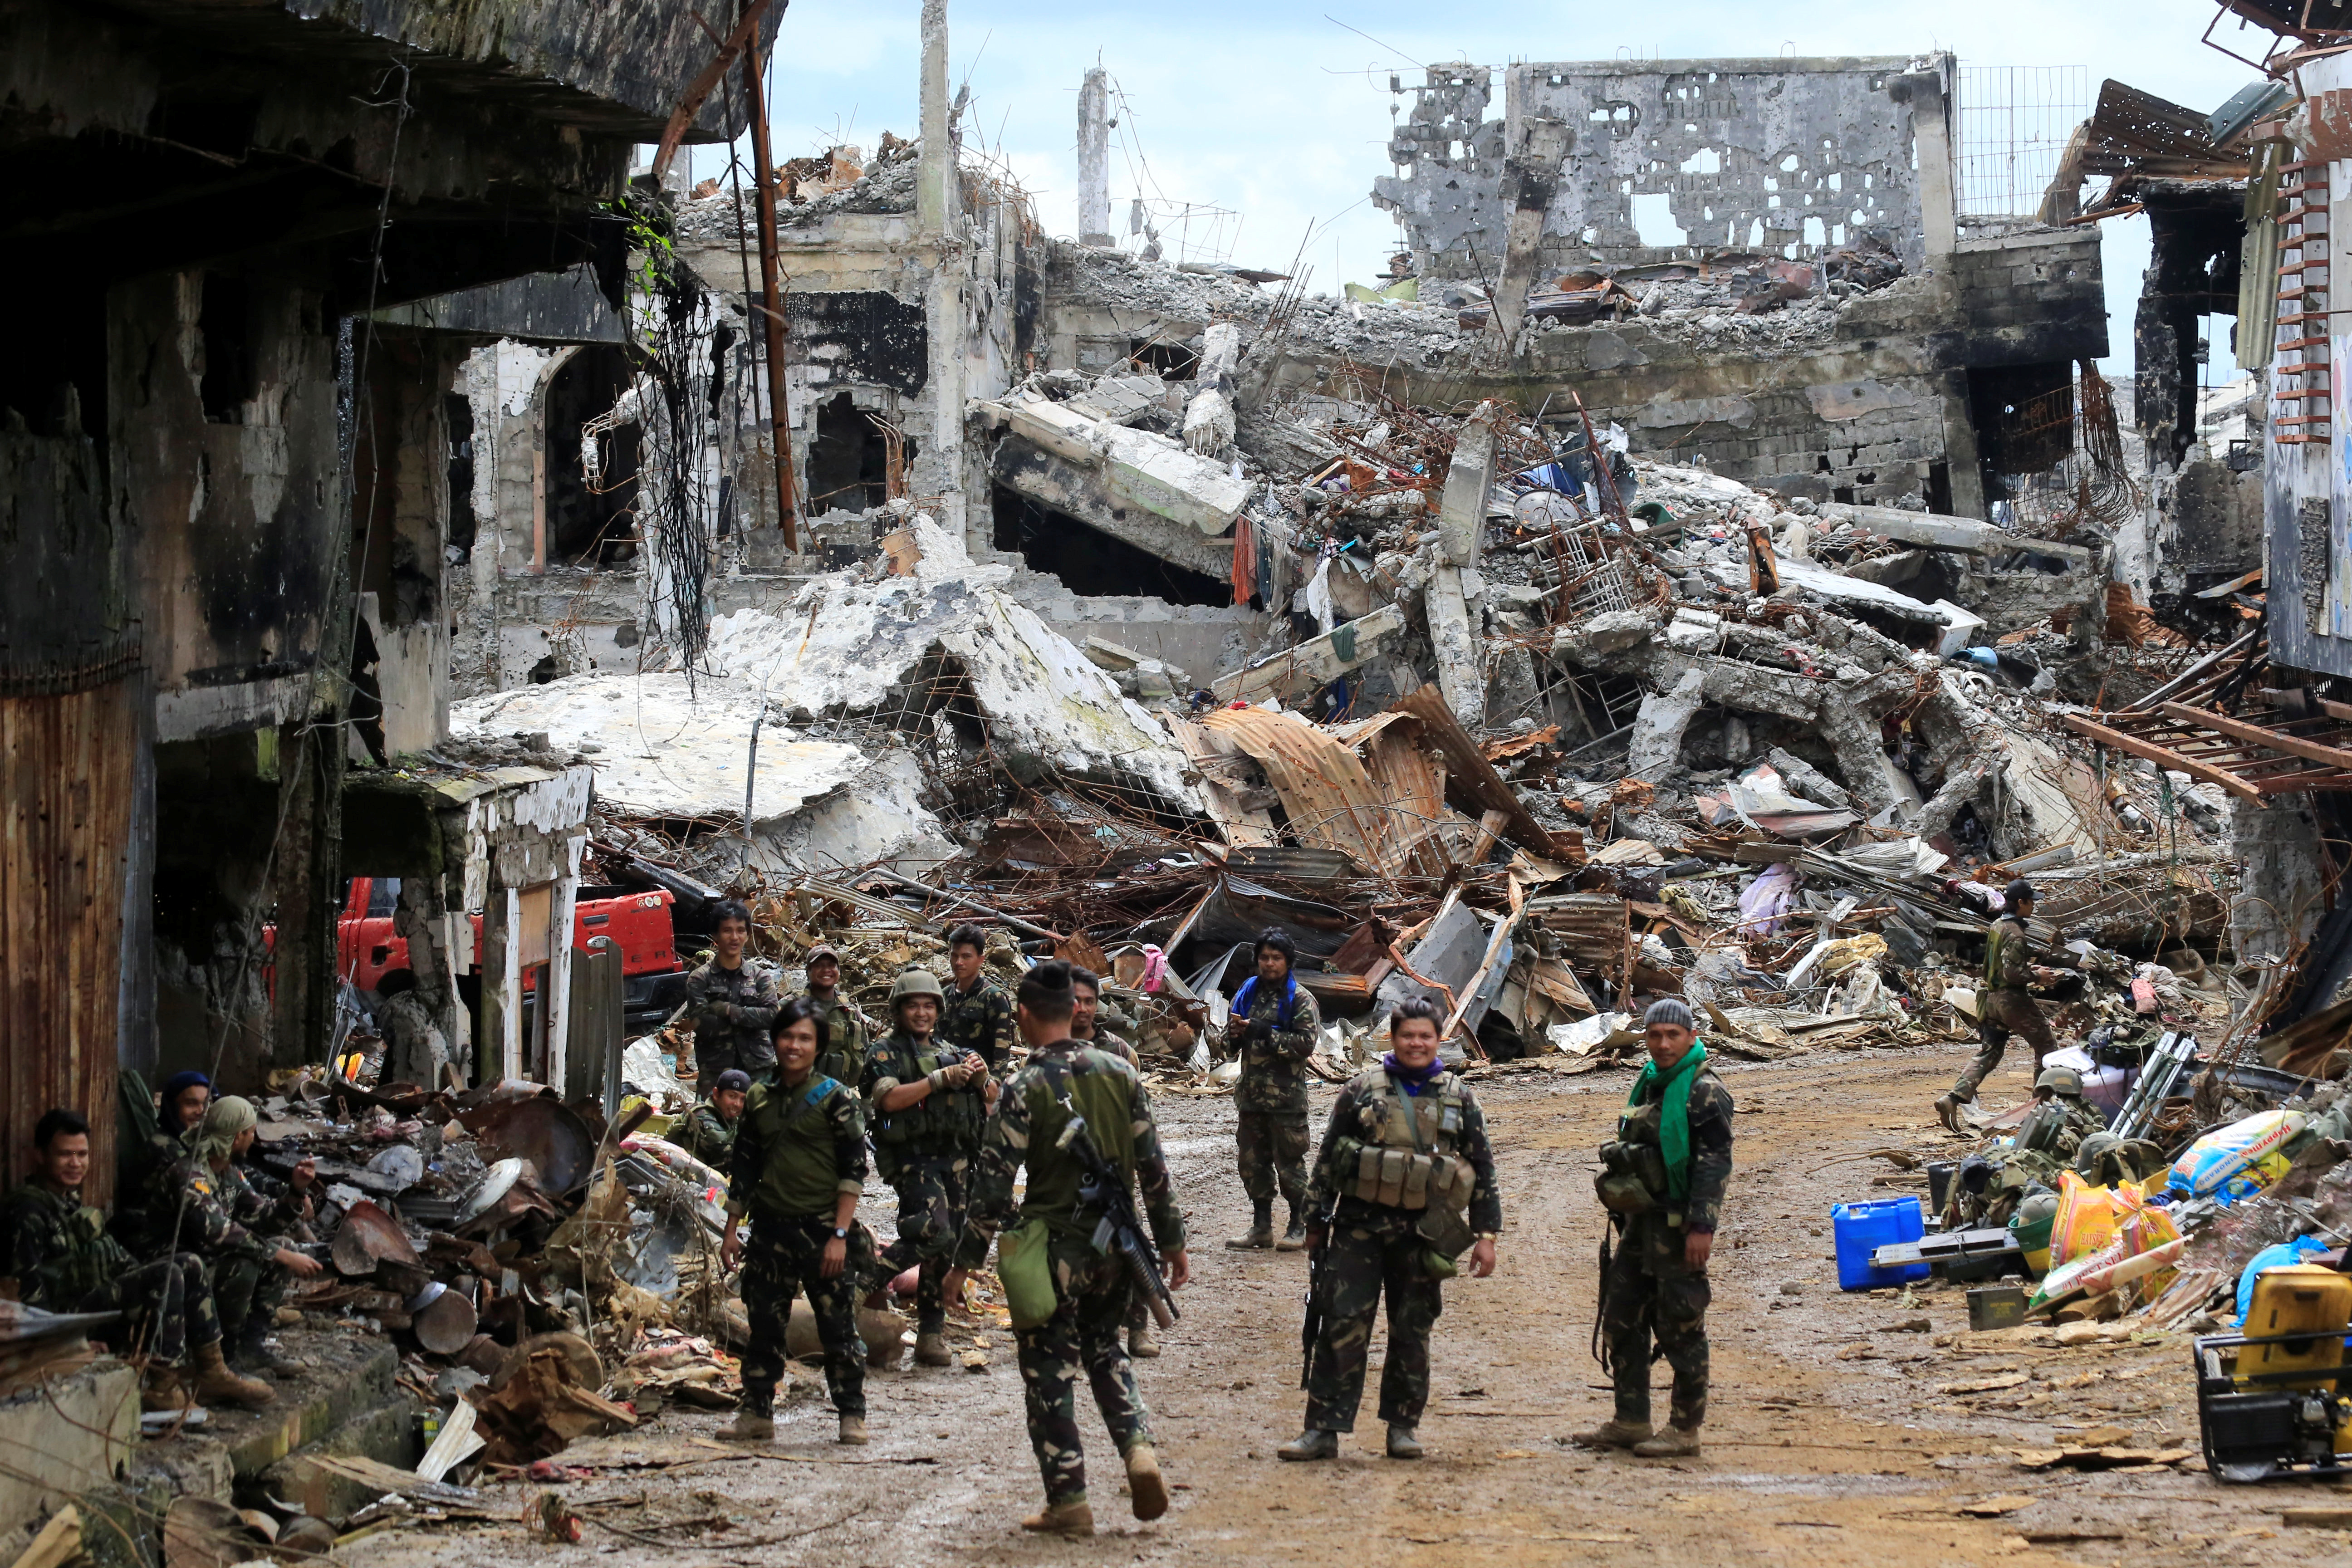 Government soldiers stand in front of damaged houses and buildings in Marawi city, Philippines, October 25, 2017.